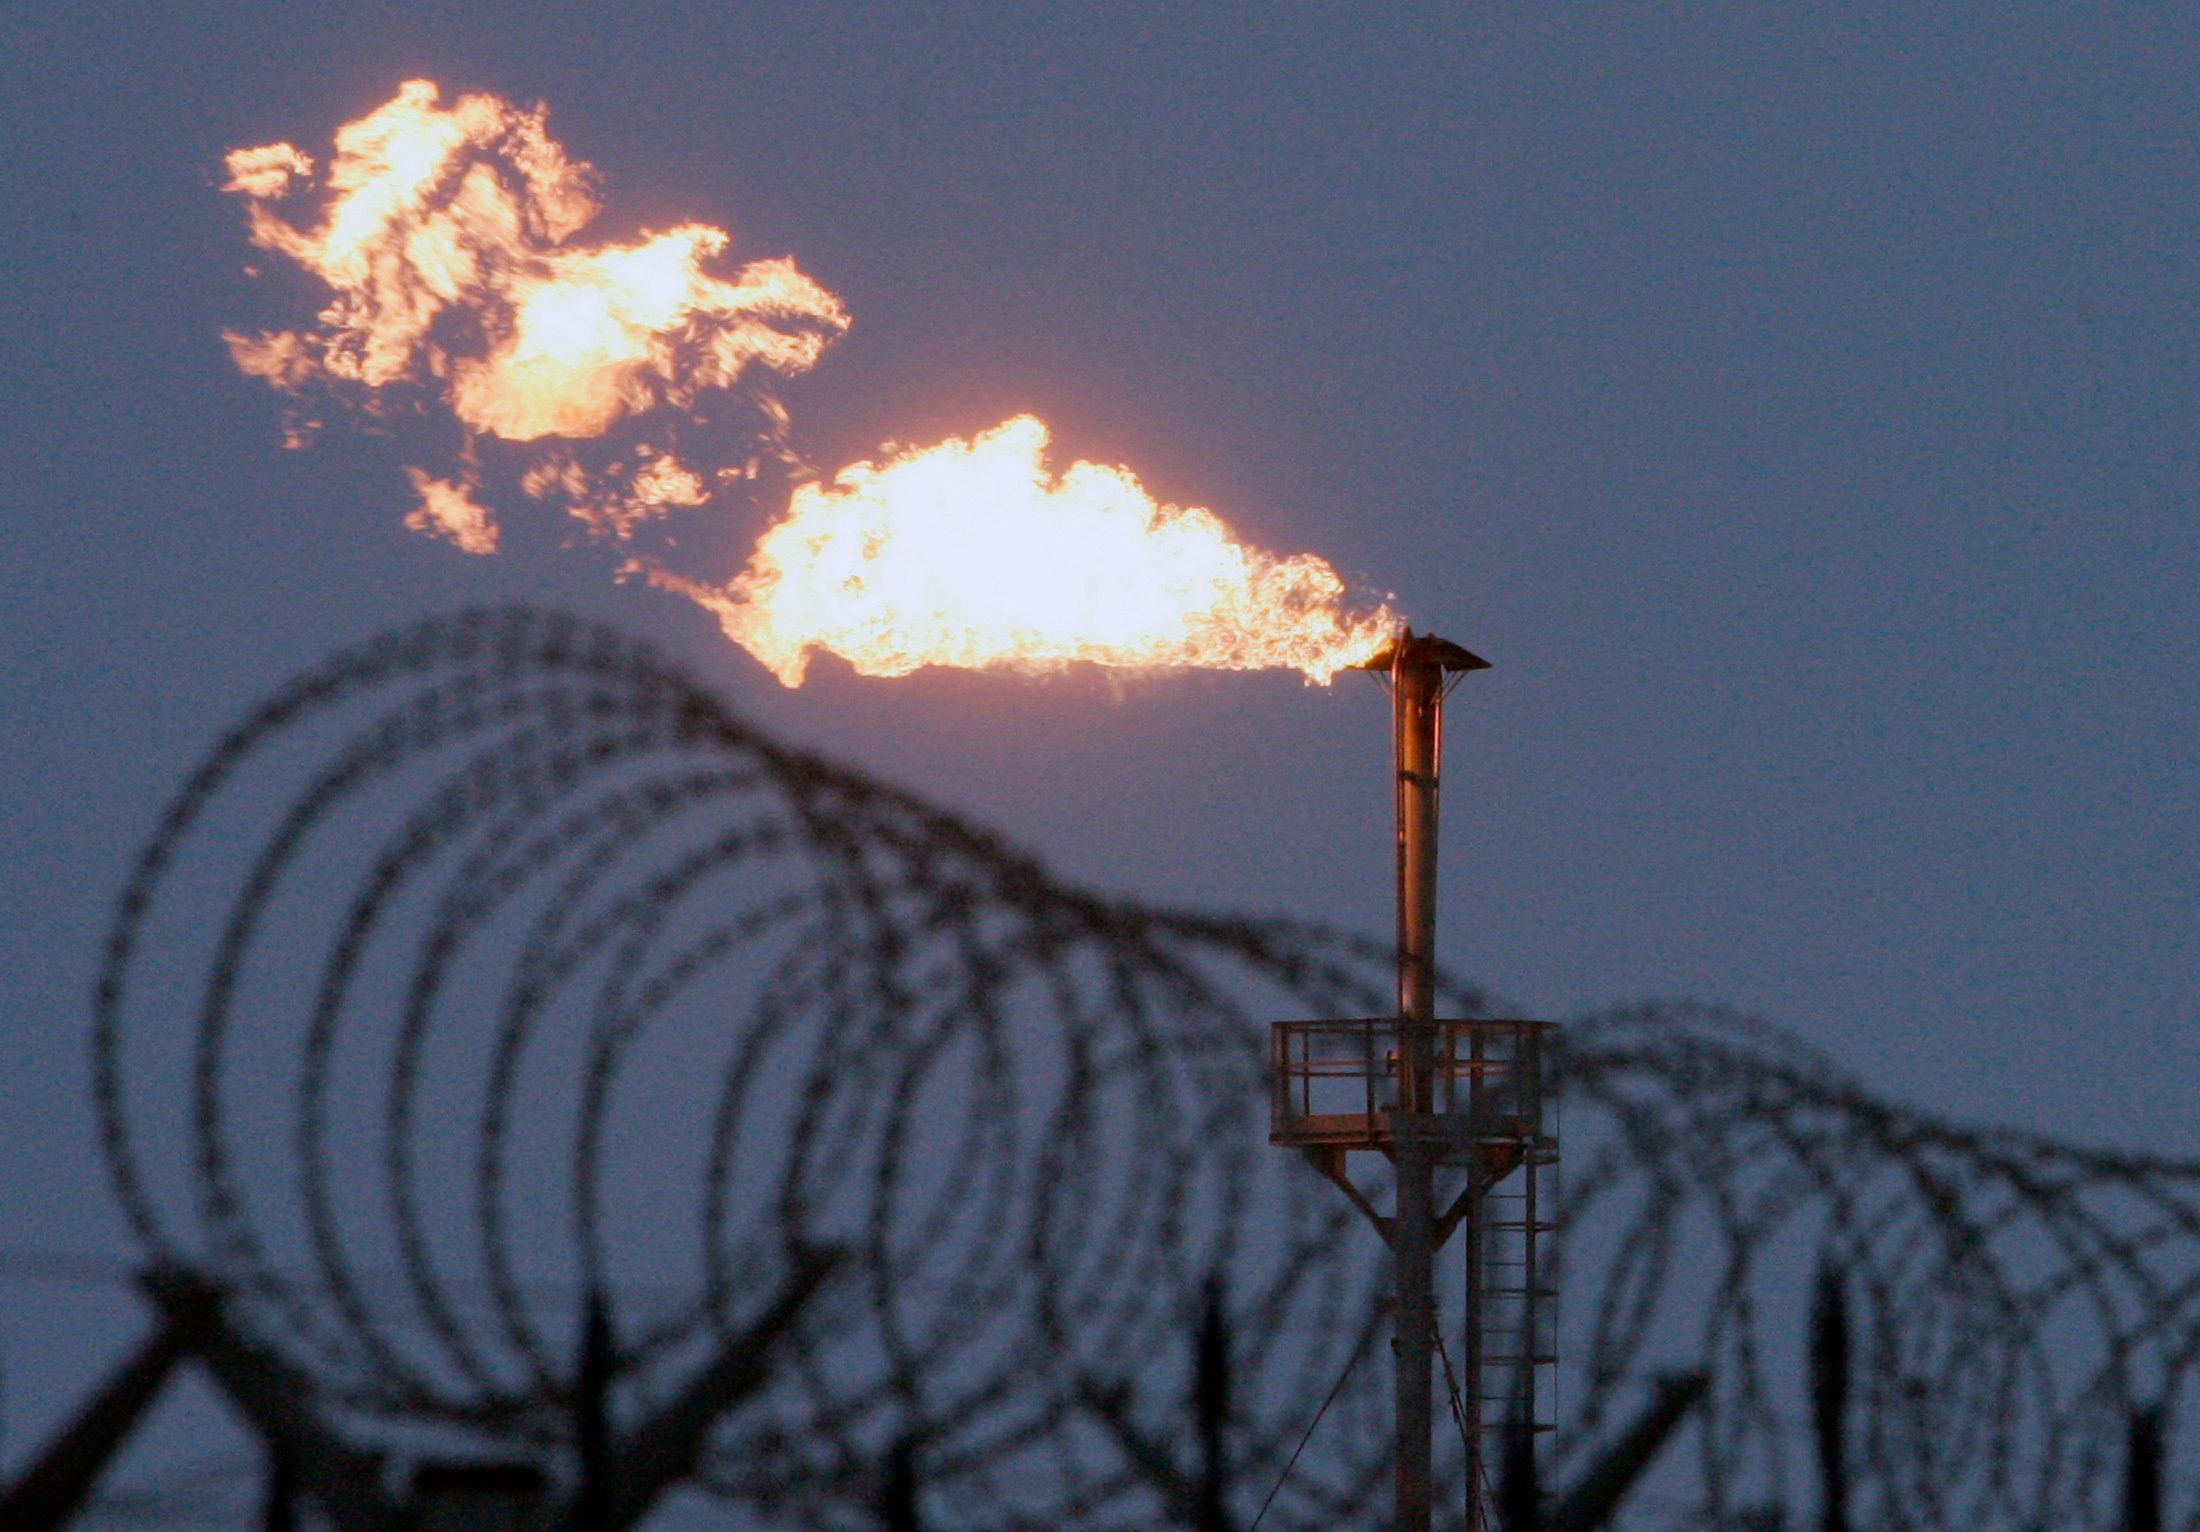 A gas flare burns at the Yuzhno Russkoye oil and gas field, some 200 km (124 miles) from the town of Novy Urengoy, December 18, 2007. Russia's ambitious targets set by President Vladimir Putin last spring to cease gas flaring by 2011 is on track, companies say, but the government casts doubt. Picture taken December 18, 2007.    REUTERS/Denis Sinyakov (RUSSIA)